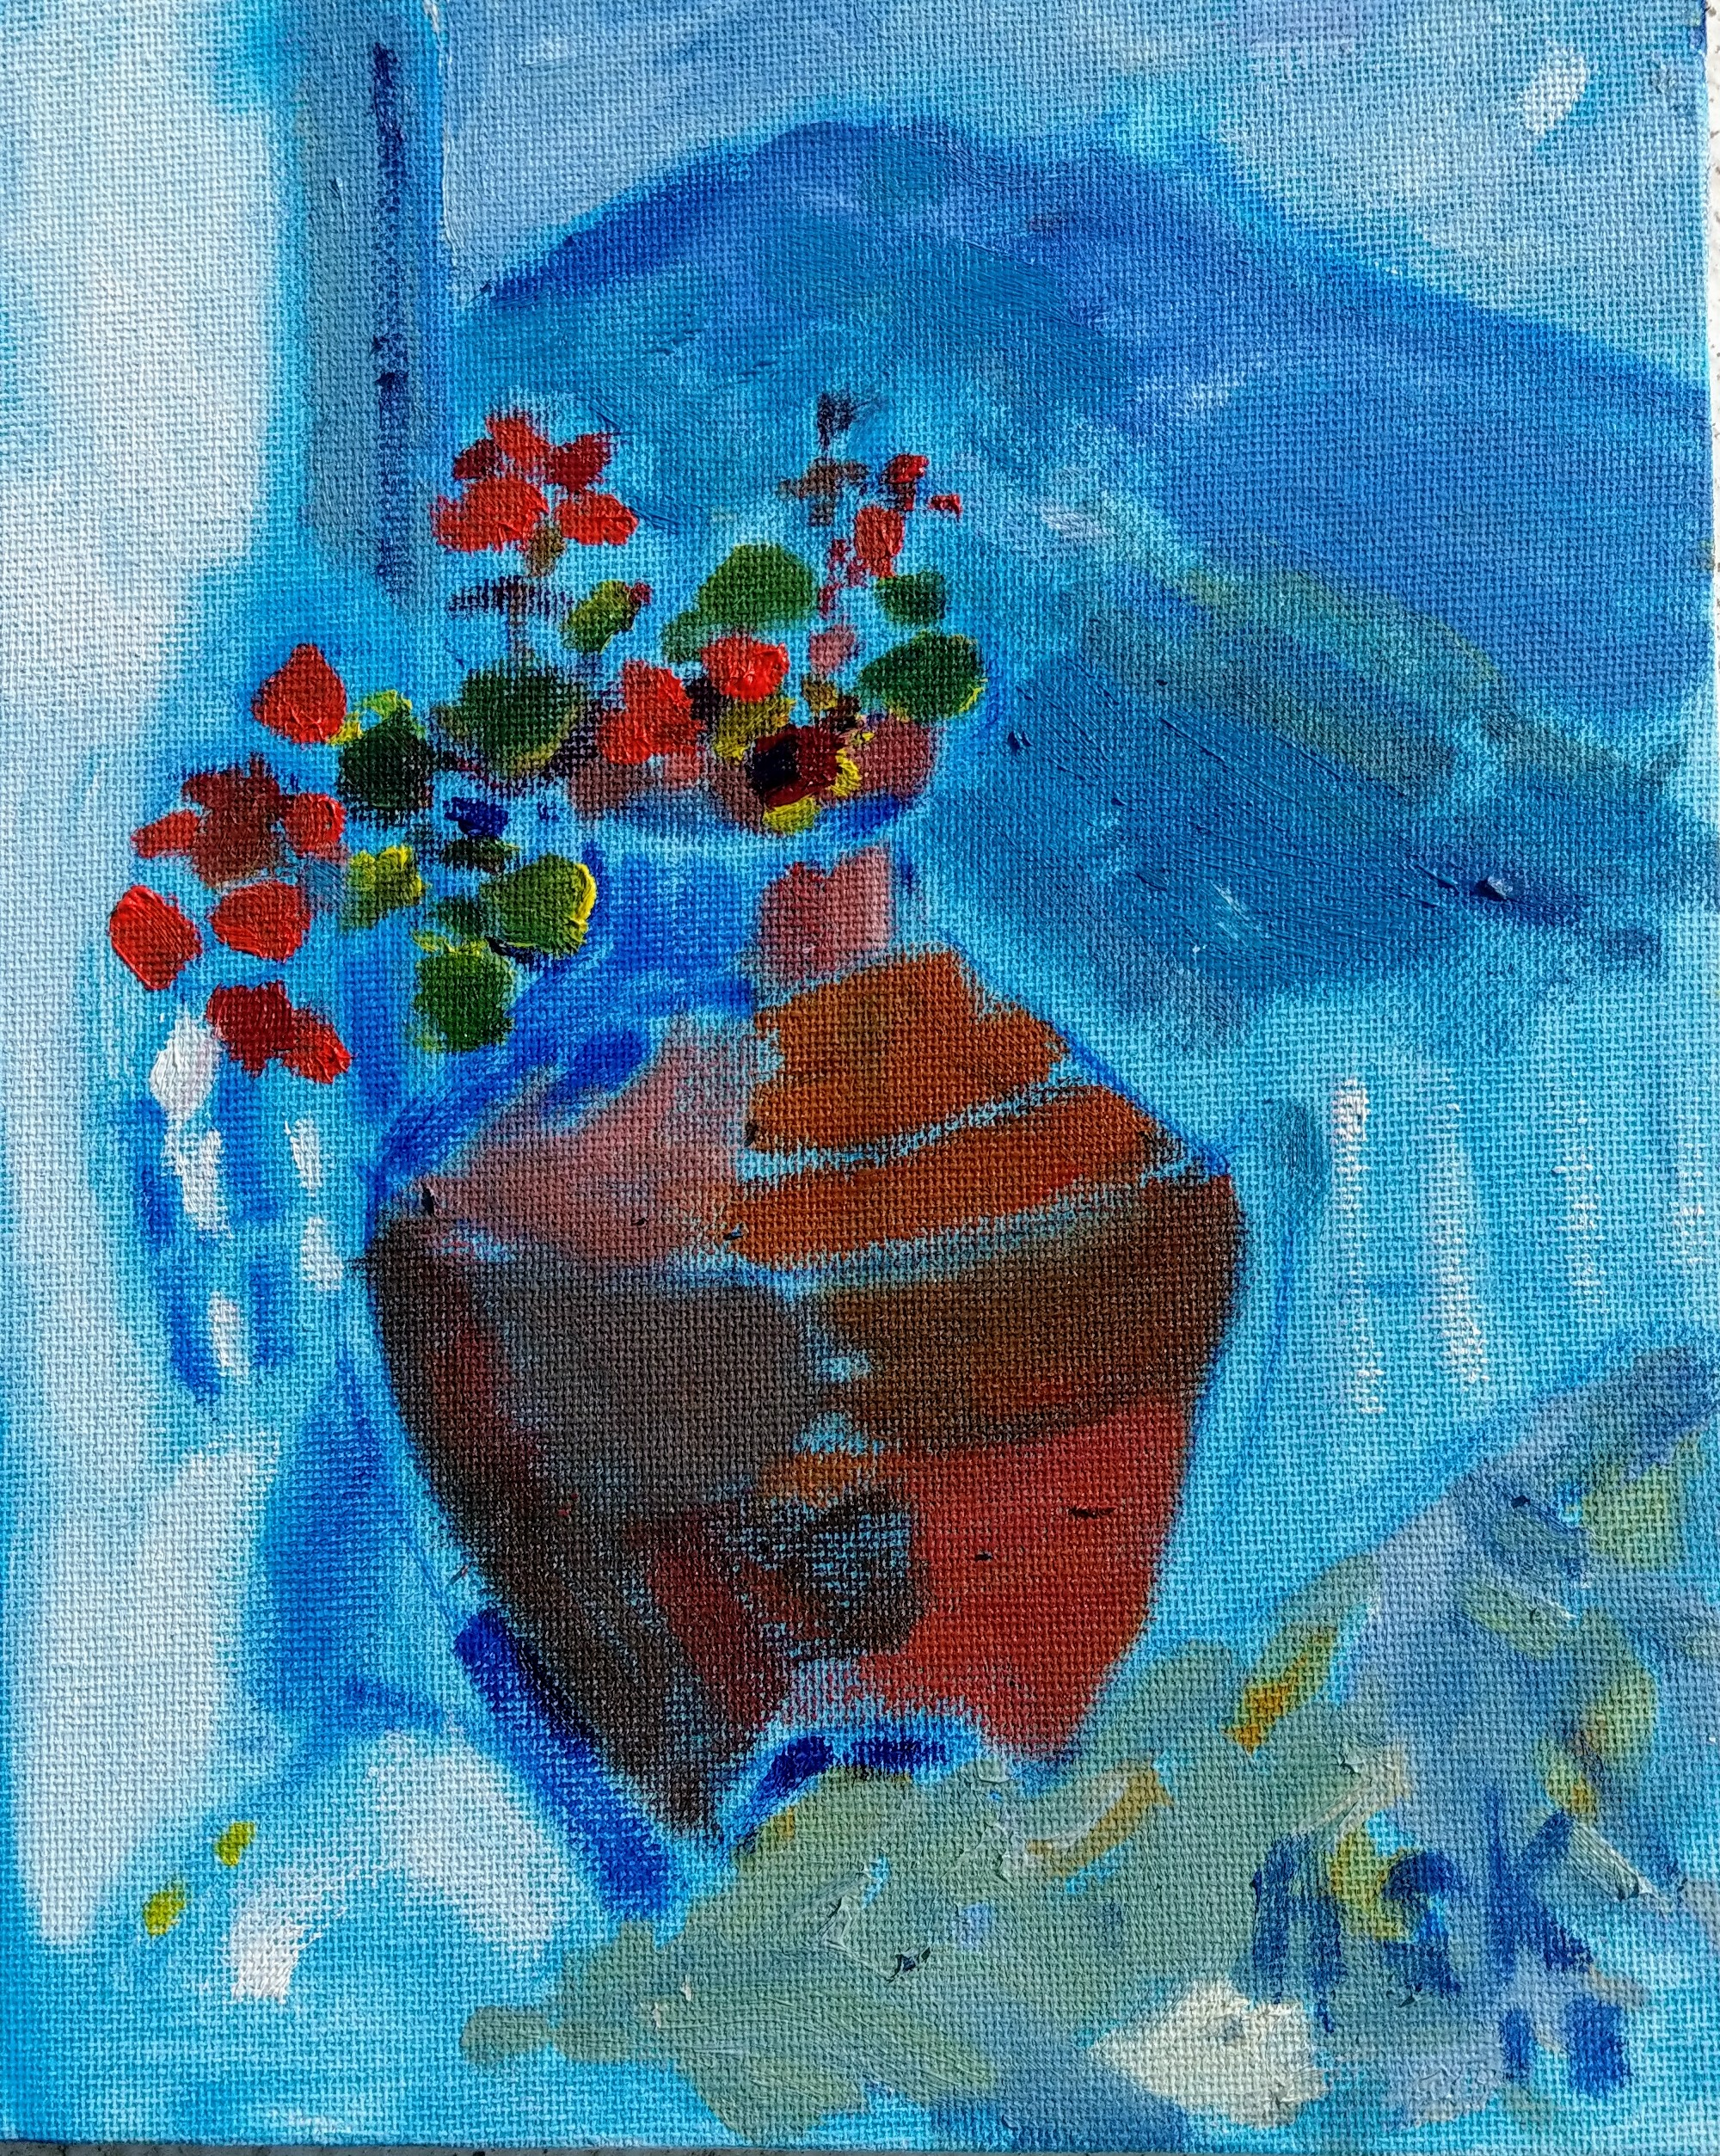 Very small oil painting by Ask  300 x 200 mm of geraniums in a terracota pot